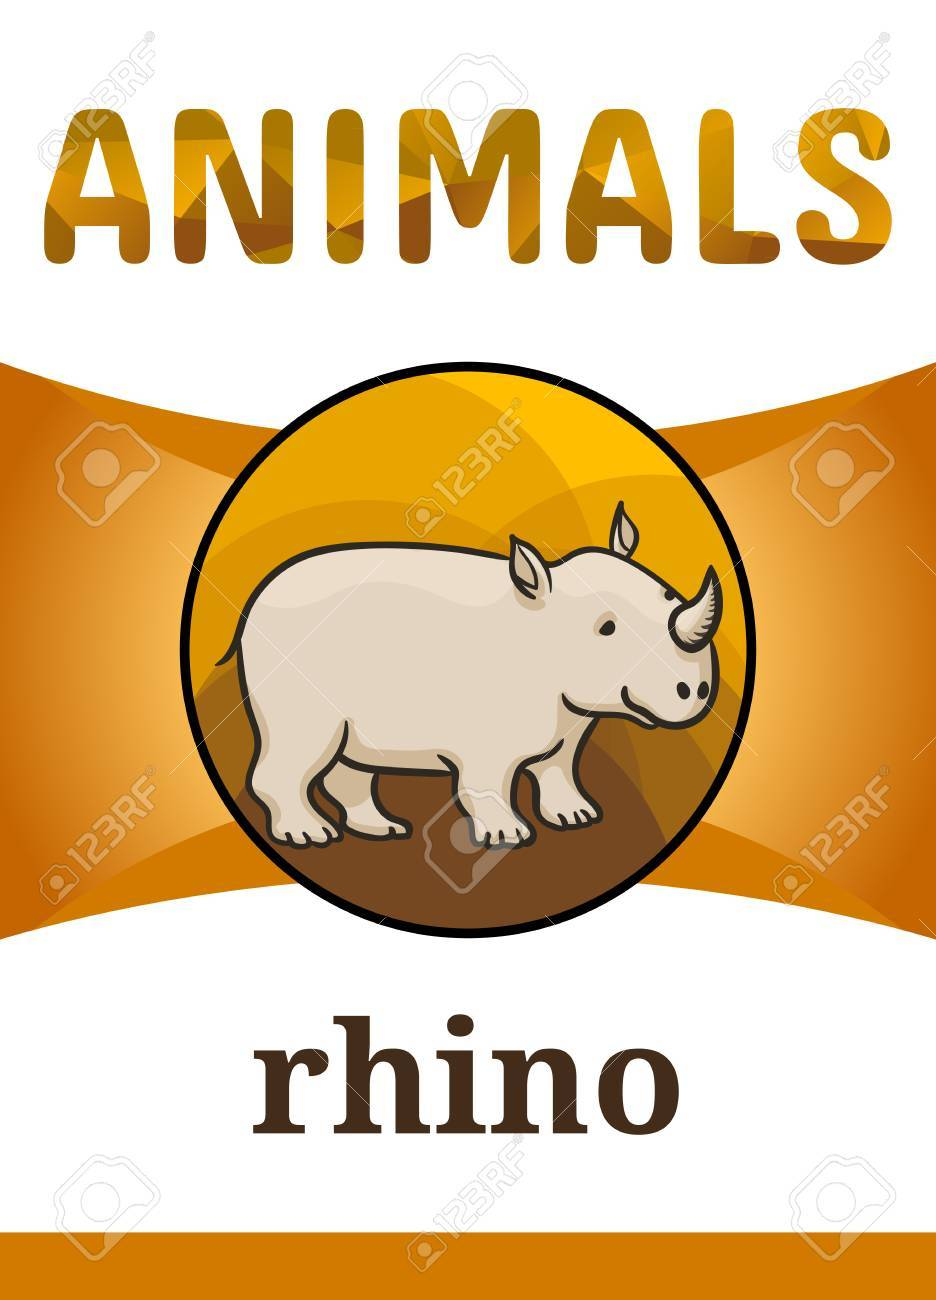 photograph regarding Rhino Printable referred to as Printable animal flash card, vector instance. Appropriate for..